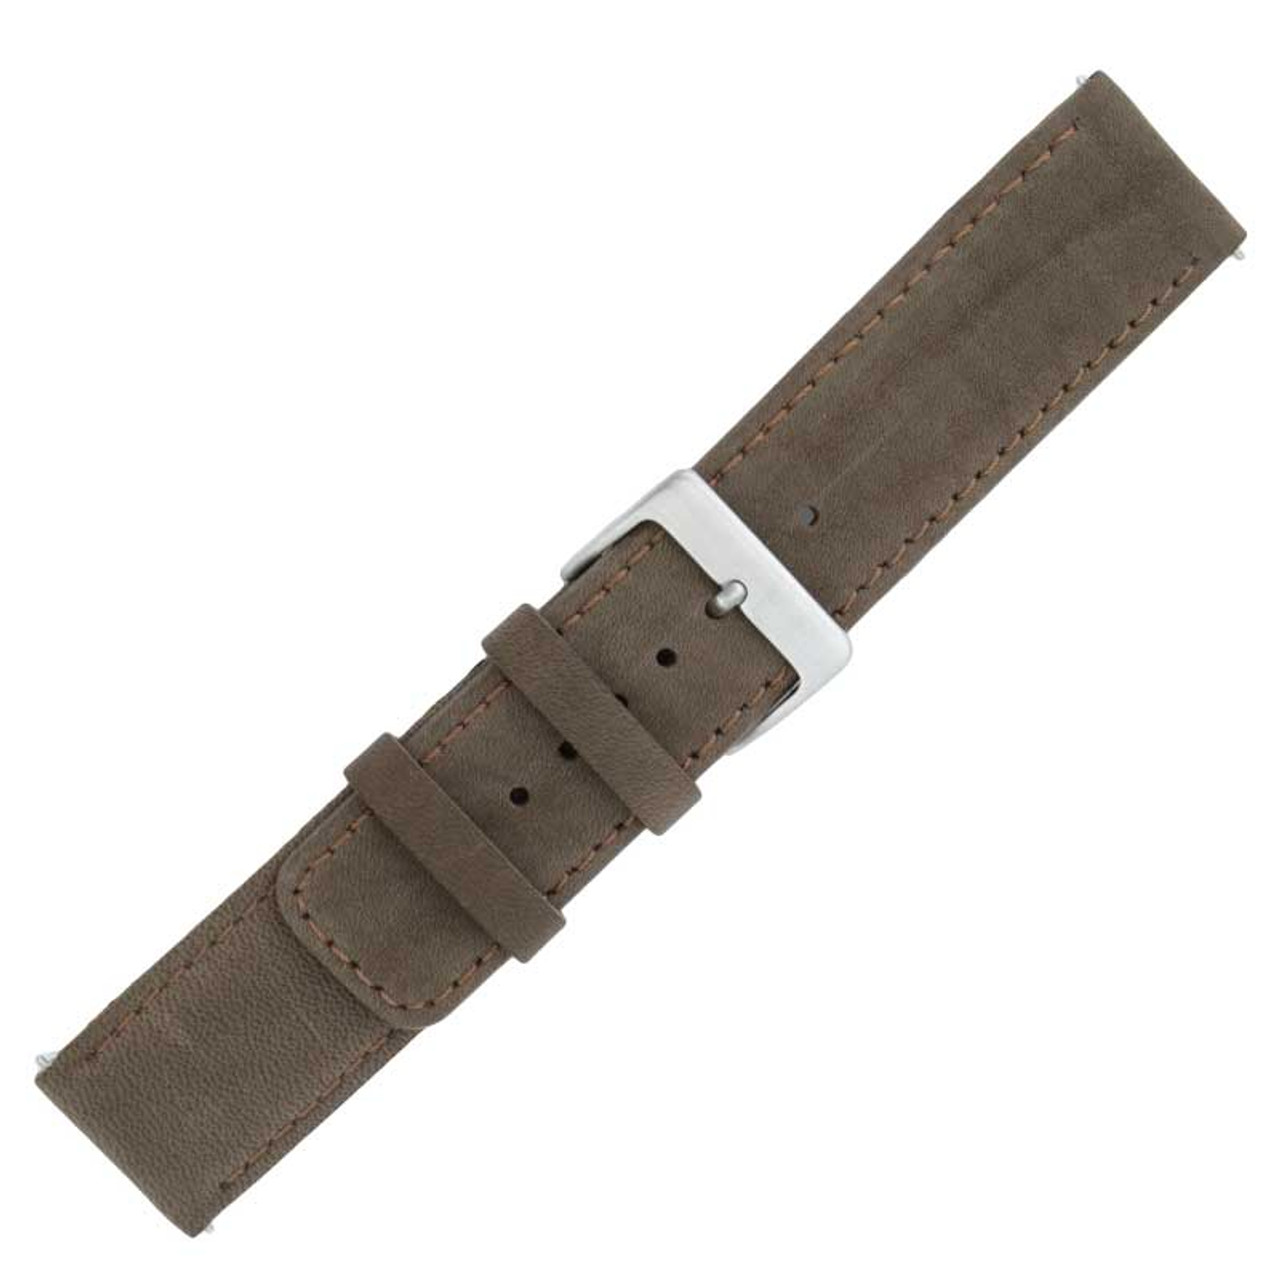 ca34cc619 22MM Soft Leather Flat Brown Watch Band with Quick Release Spring Bars